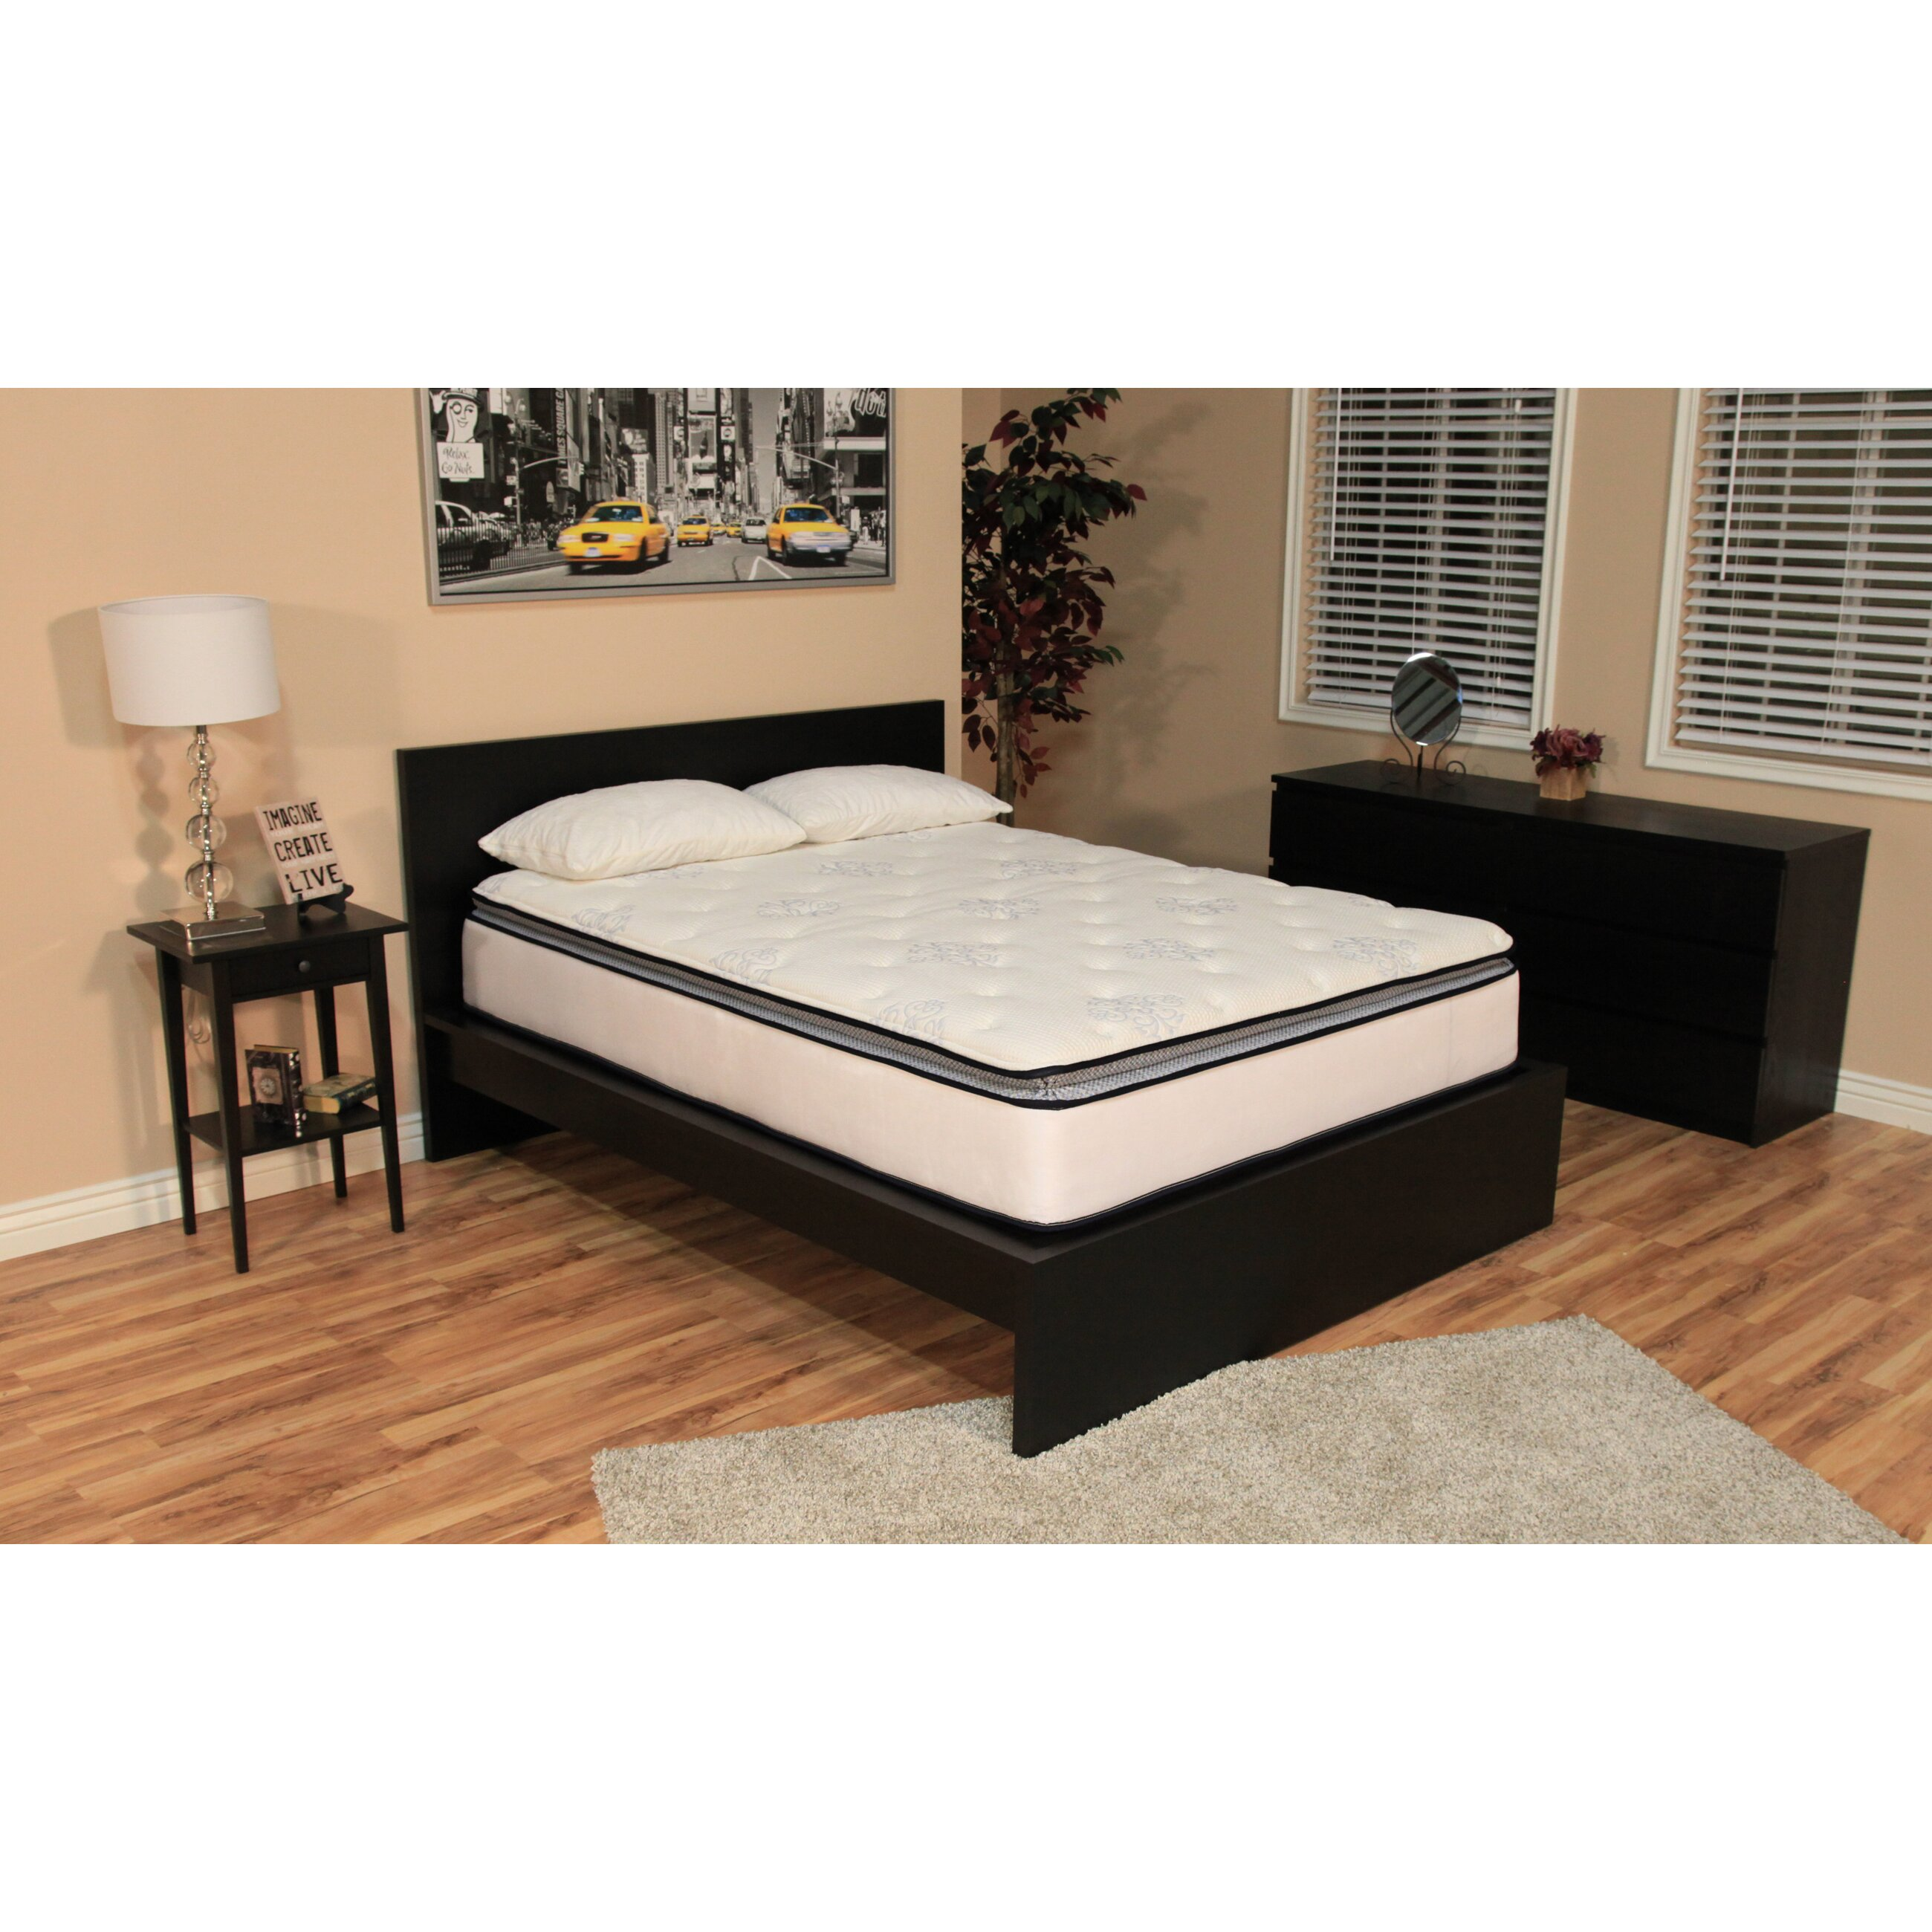 Brooklyn bedding ultimate dreams 12quot firm mattress for Brooklyn bedding sale